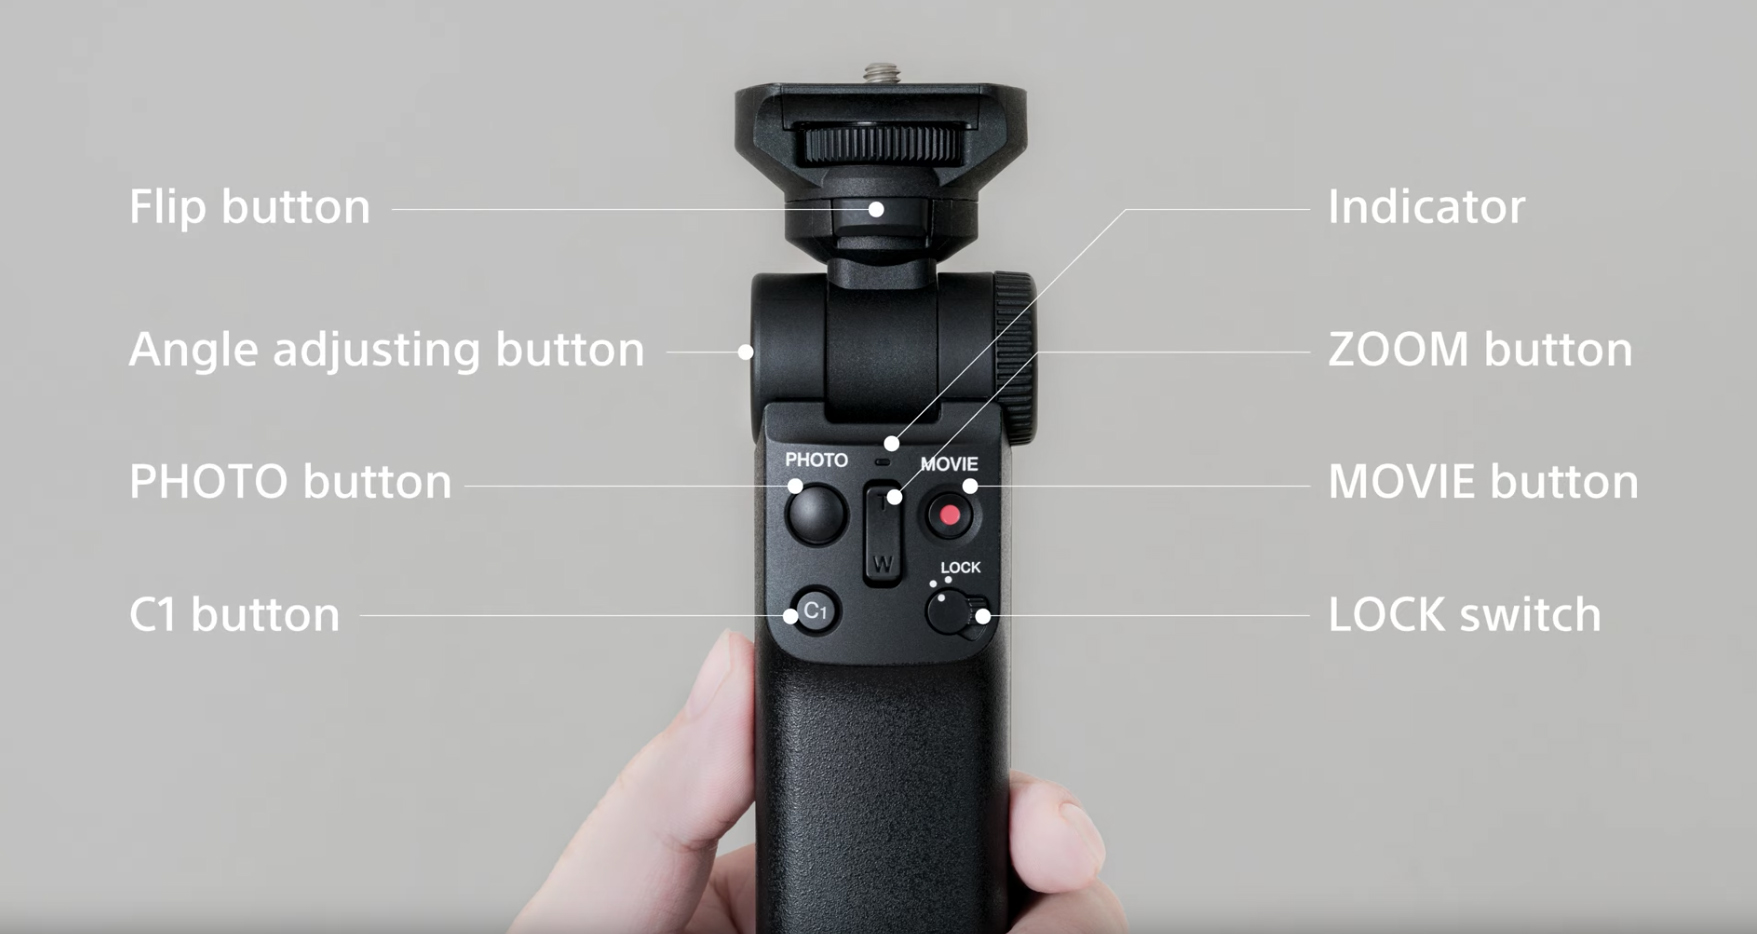 Sony's Vlogger-Friendly Camera Grip Has Bluetooth Control Built In